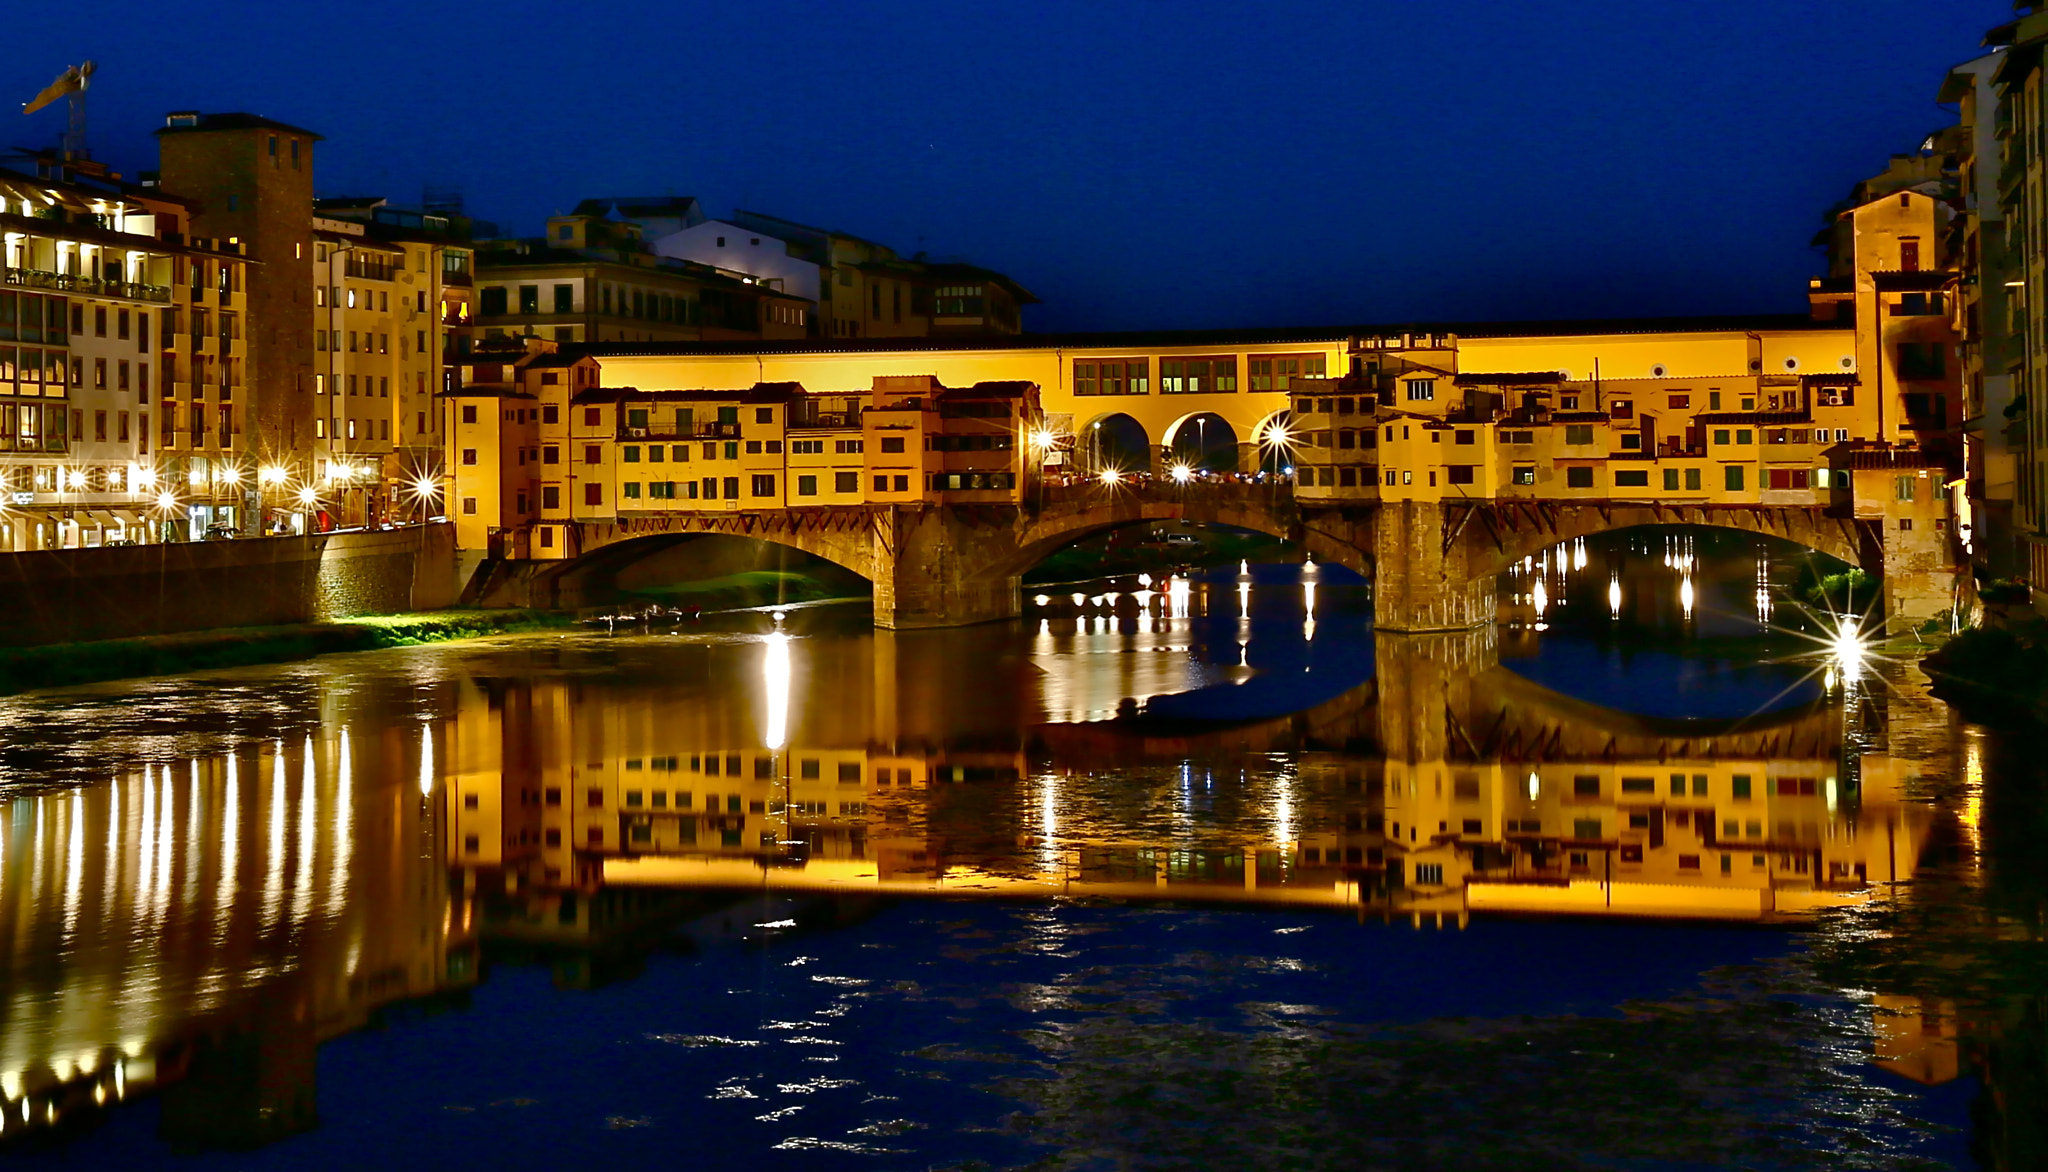 Photograph Reflections of Vecchio by Michael Warren on 500px